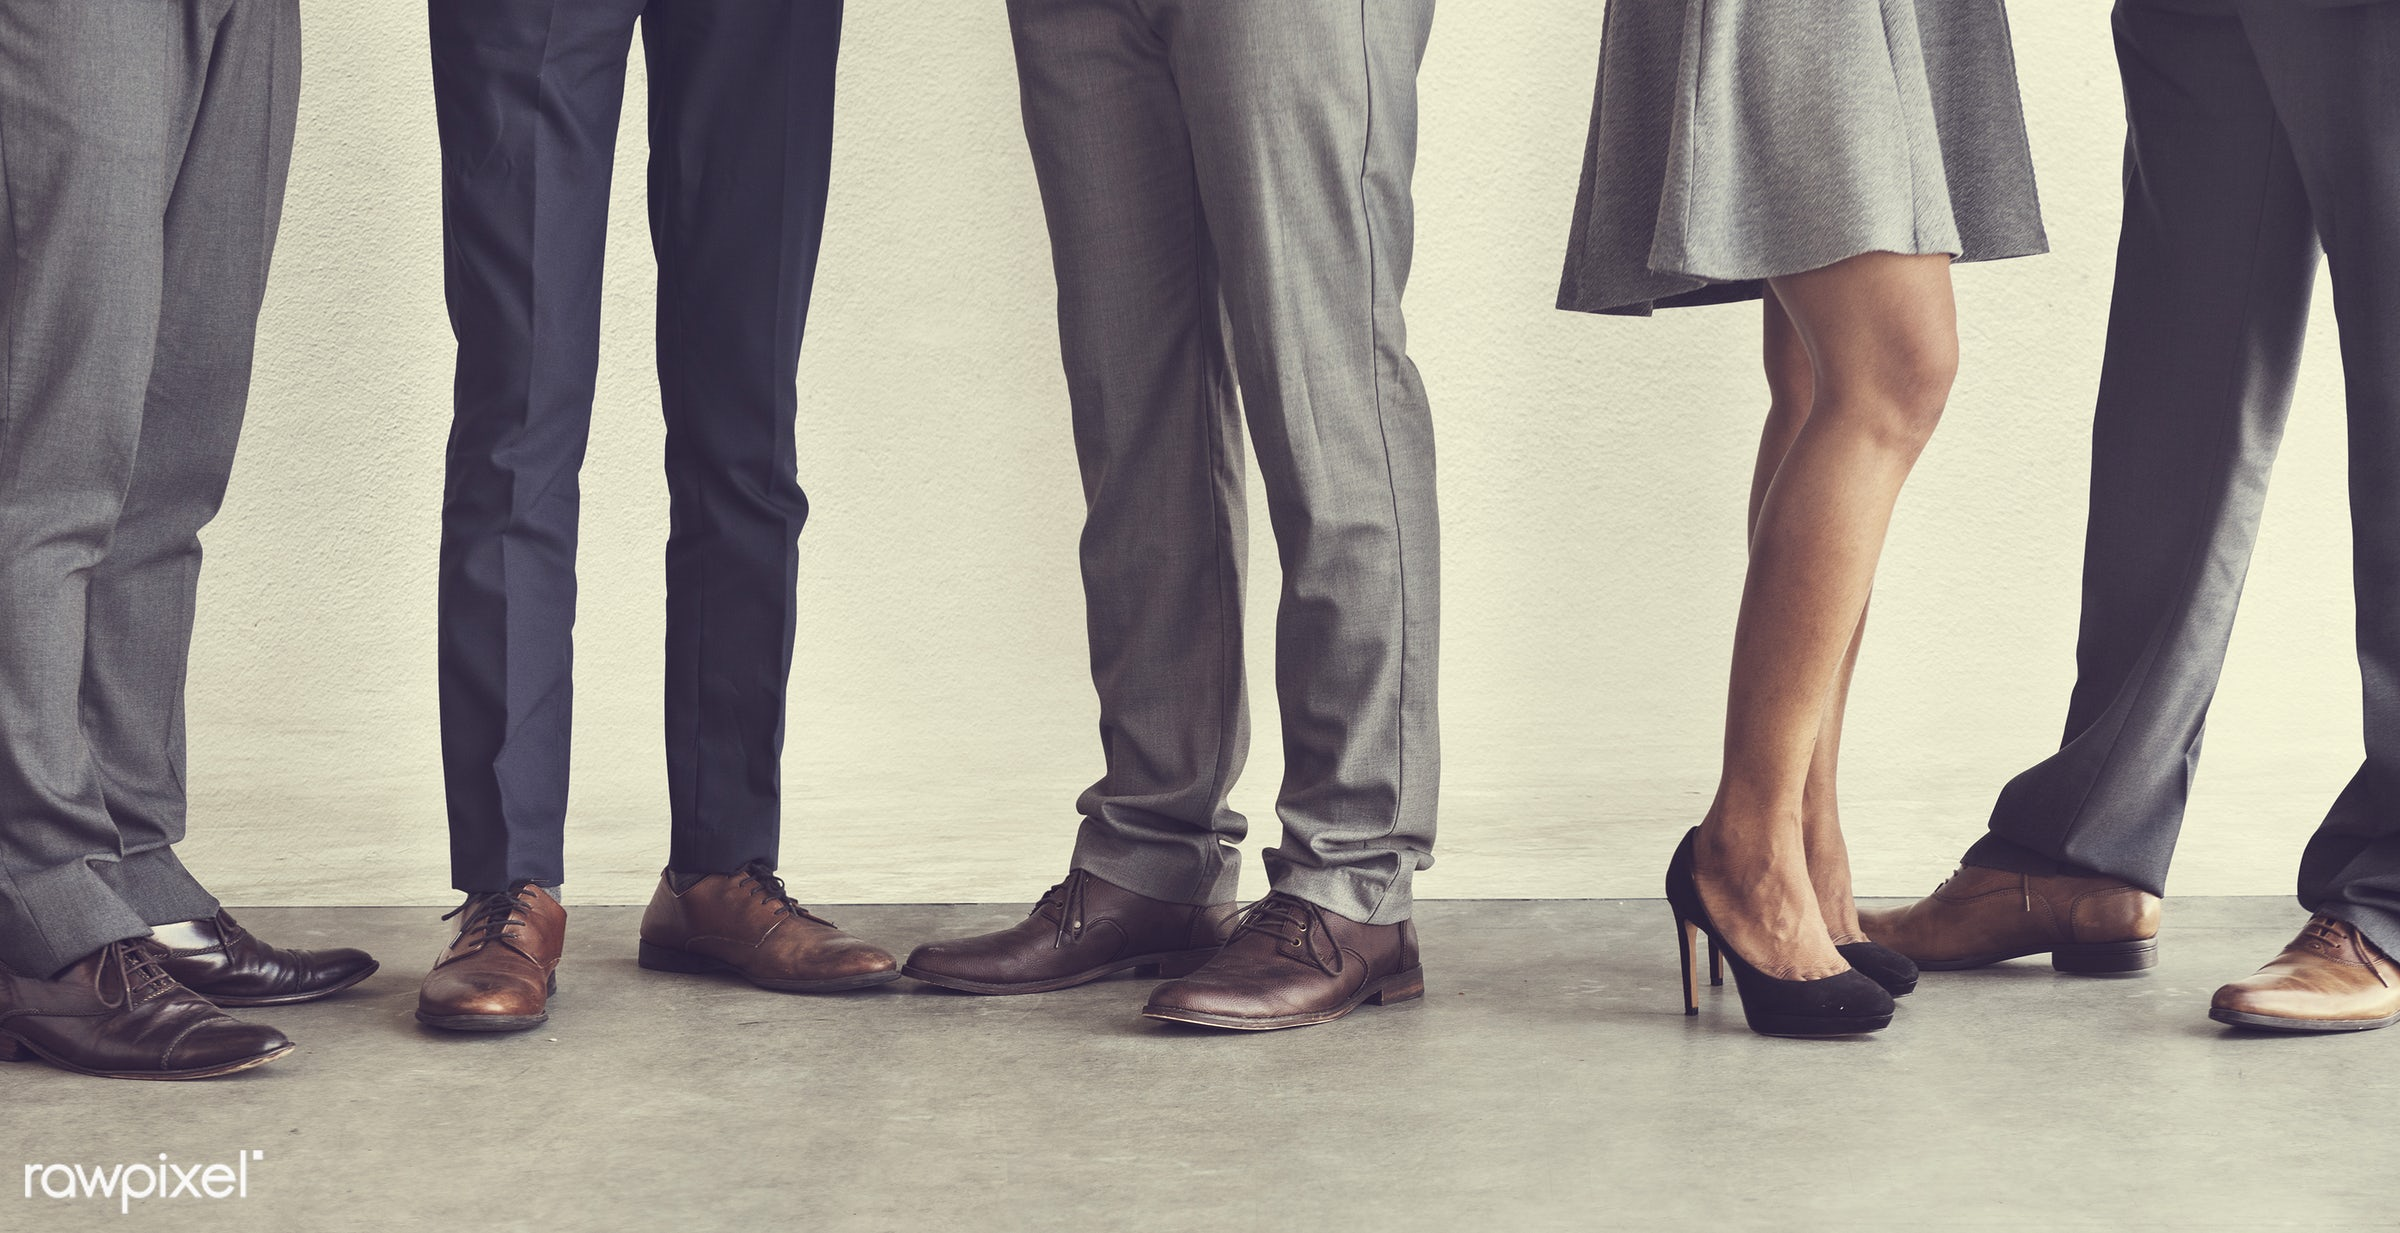 body, body part, brick wall, business, busy, collar, colleagues, corporate, coworkers, diversity, ethnicity, feet, formal,...